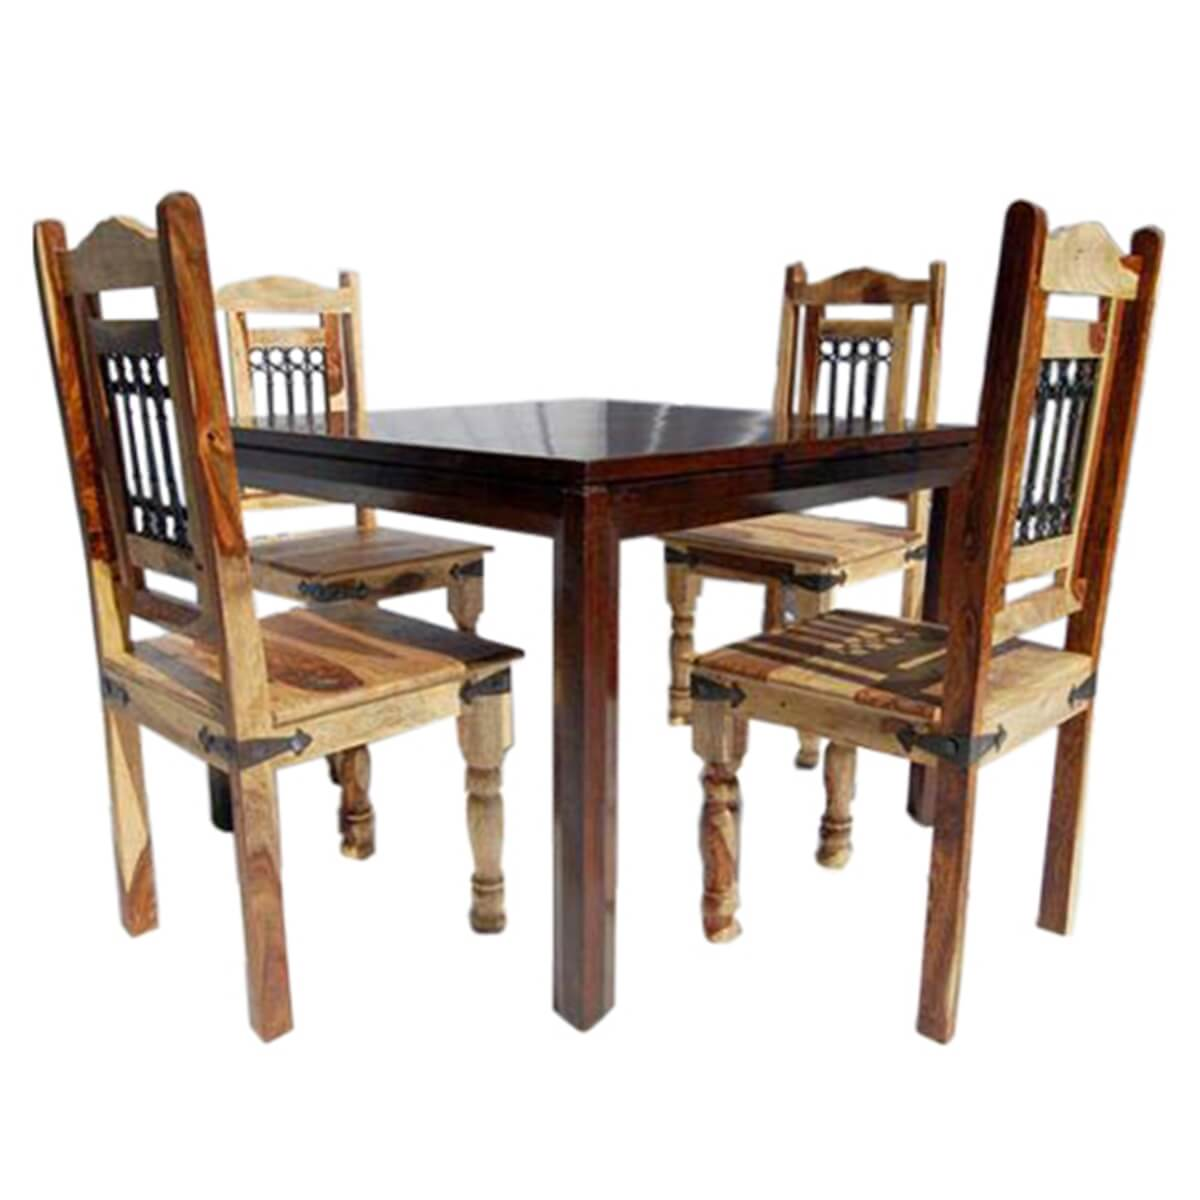 Square Dining Table With Bench: Square Dining Room Table & Chairs Set